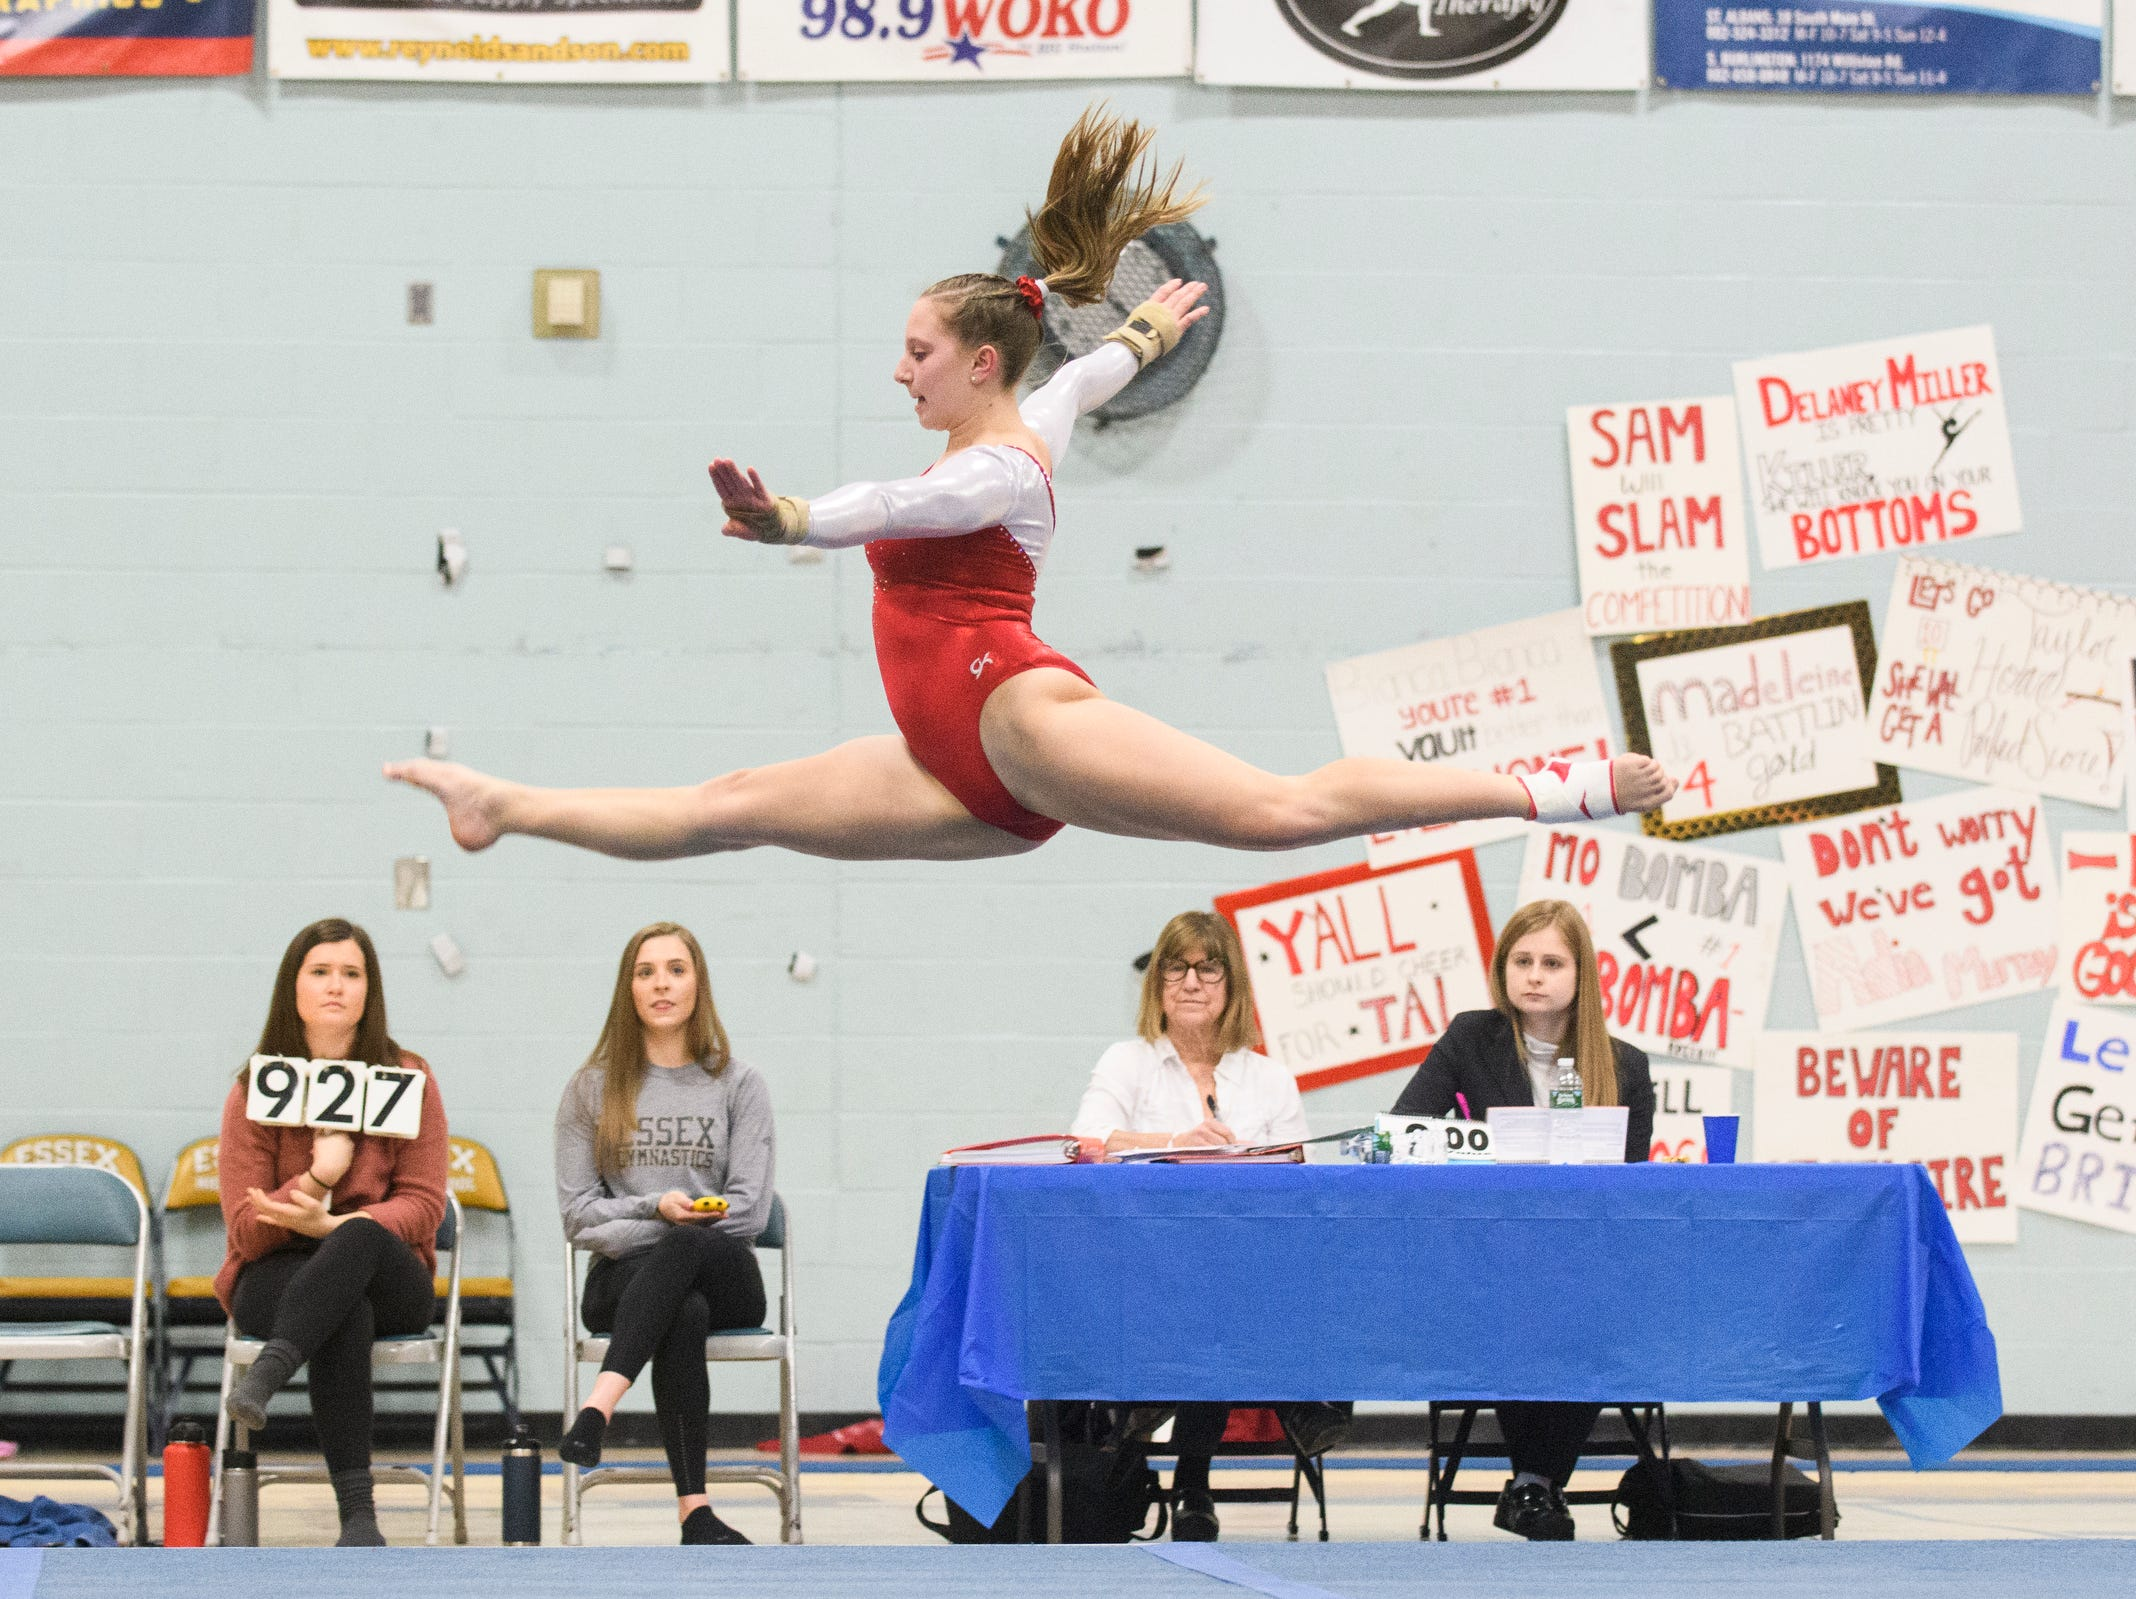 CVU's Laurynn Bombardier competes in the floor routine during the 2019 high school gymnastics championship at Essex High School on Saturday afternoon February 16, 2019 in Essex, Vermont.